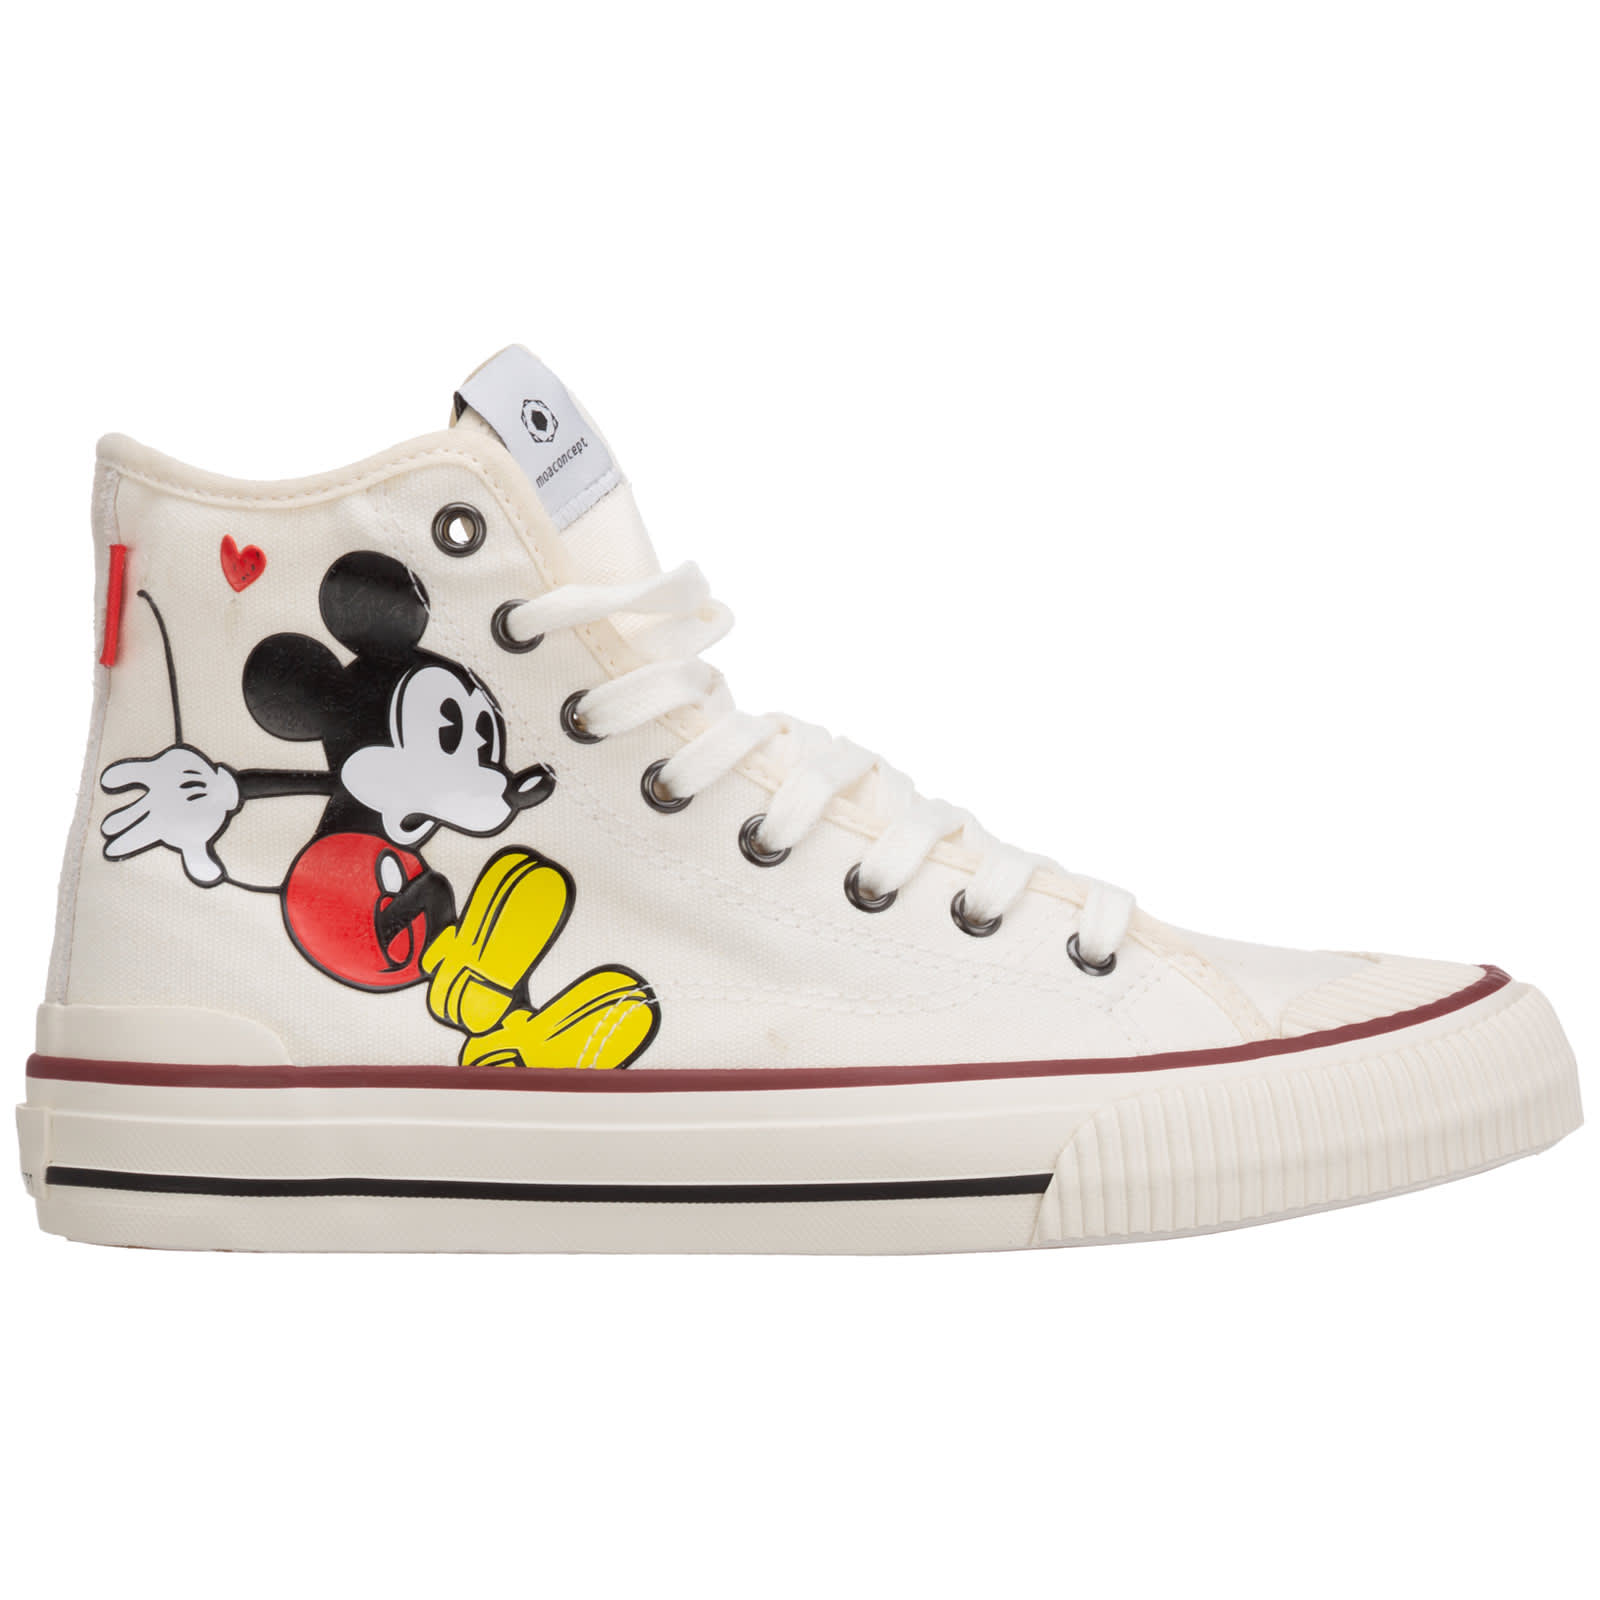 Disney Mickey Mouse High-top Sneakers